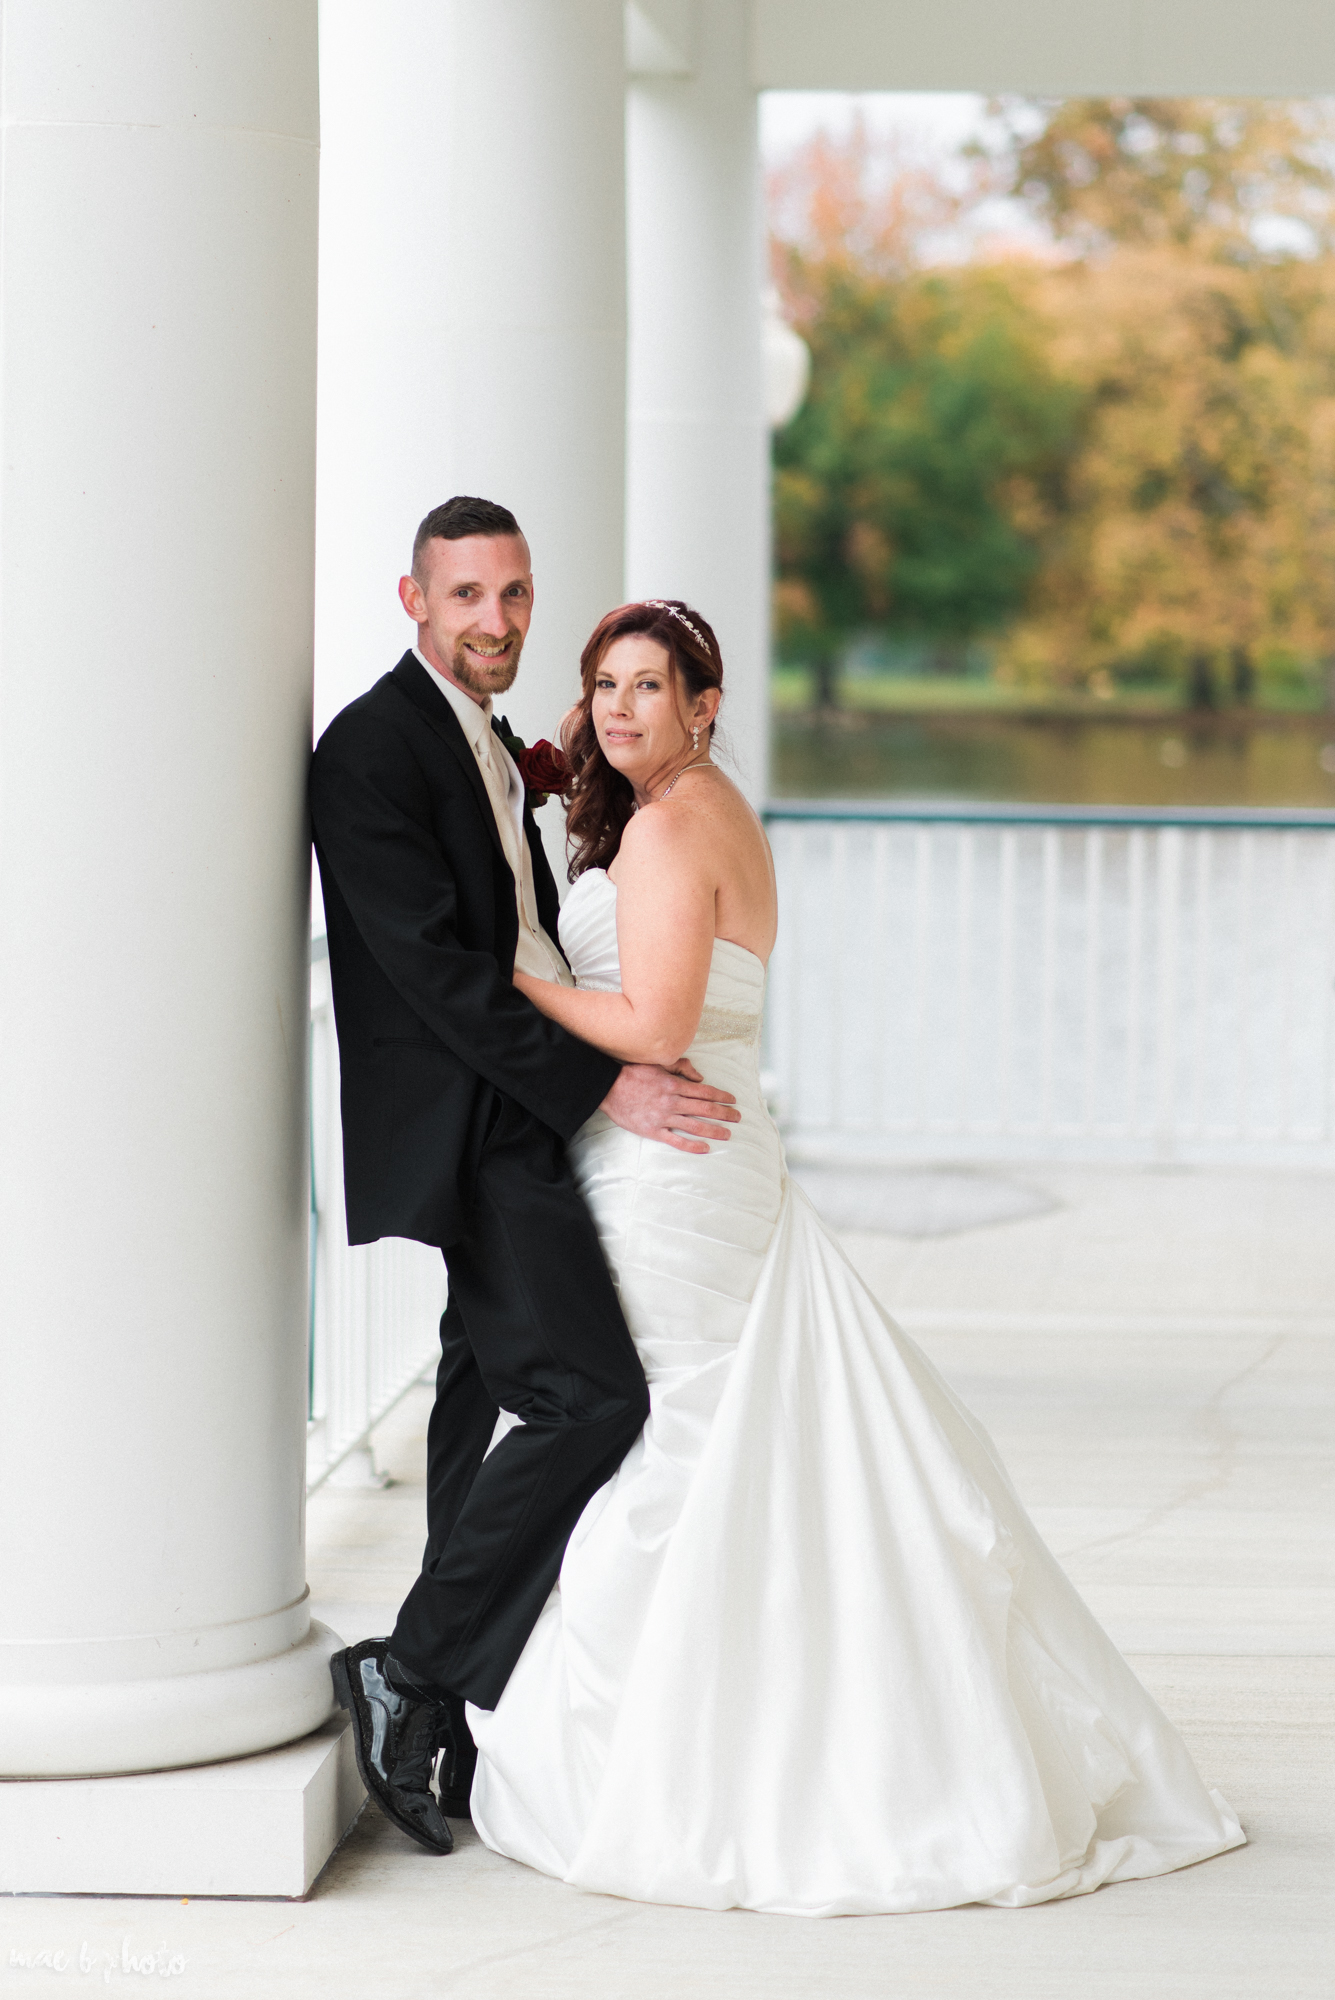 tracey and aaron's personal fall wedding at tiffany's banquet center in brookfield ohio-67.jpg